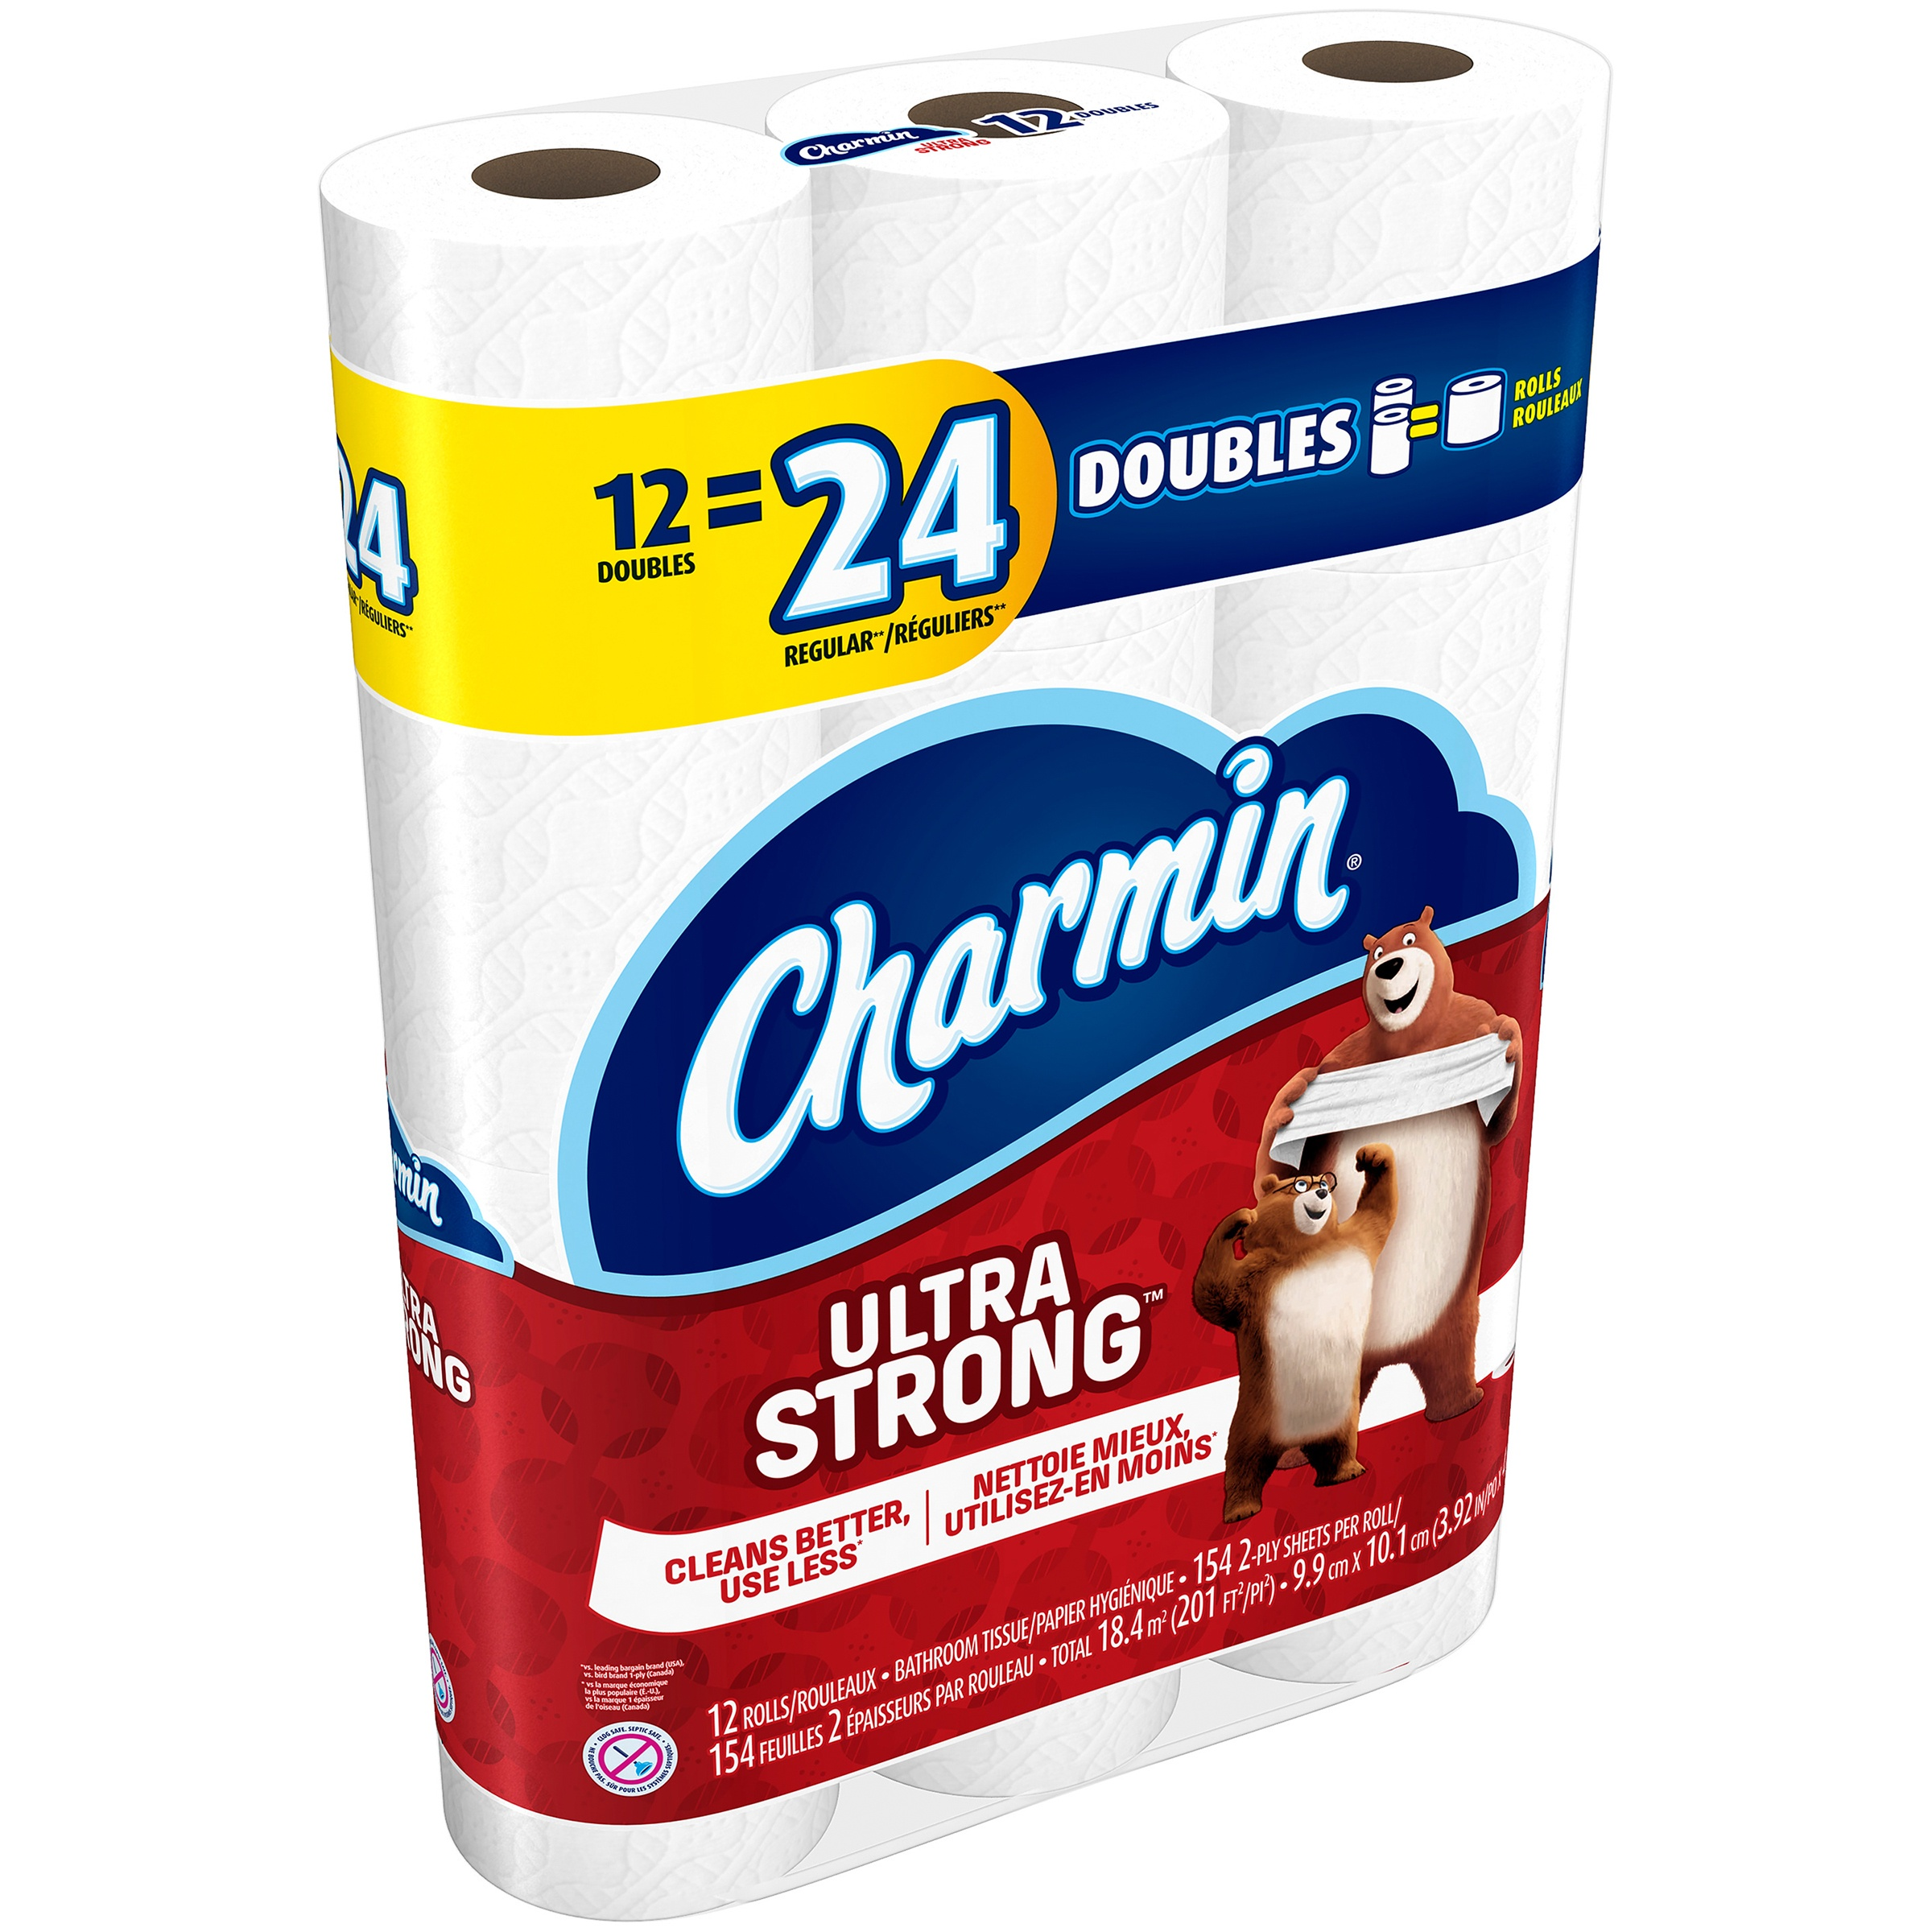 Charmin Ultra Strong Toilet Paper Double Rolls 12 CT by Procter & Gamble Company